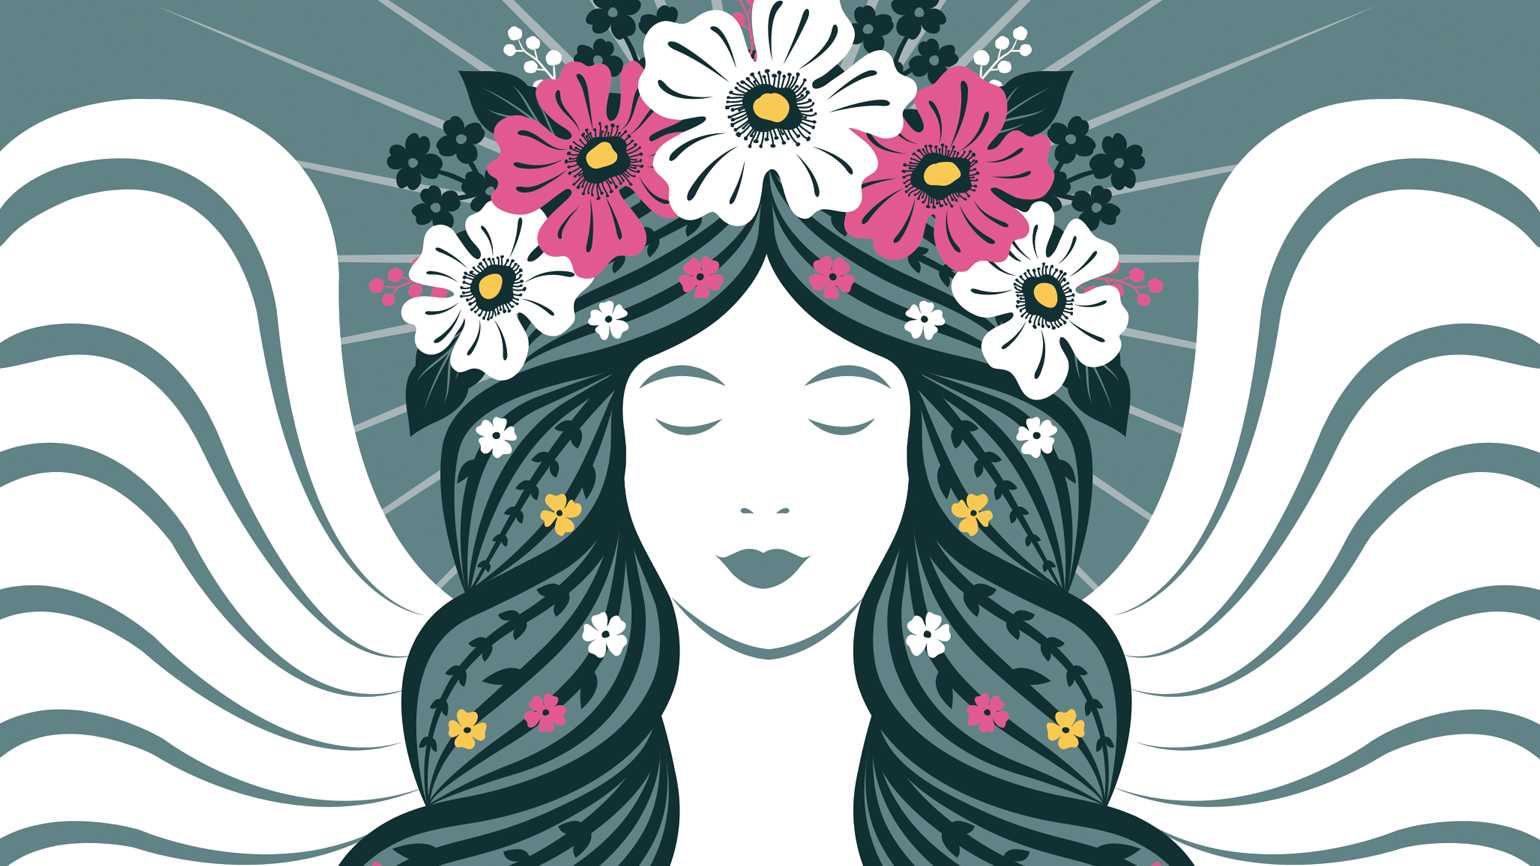 An angel with a flower crown; Illustration by Yulia Vysotskaya